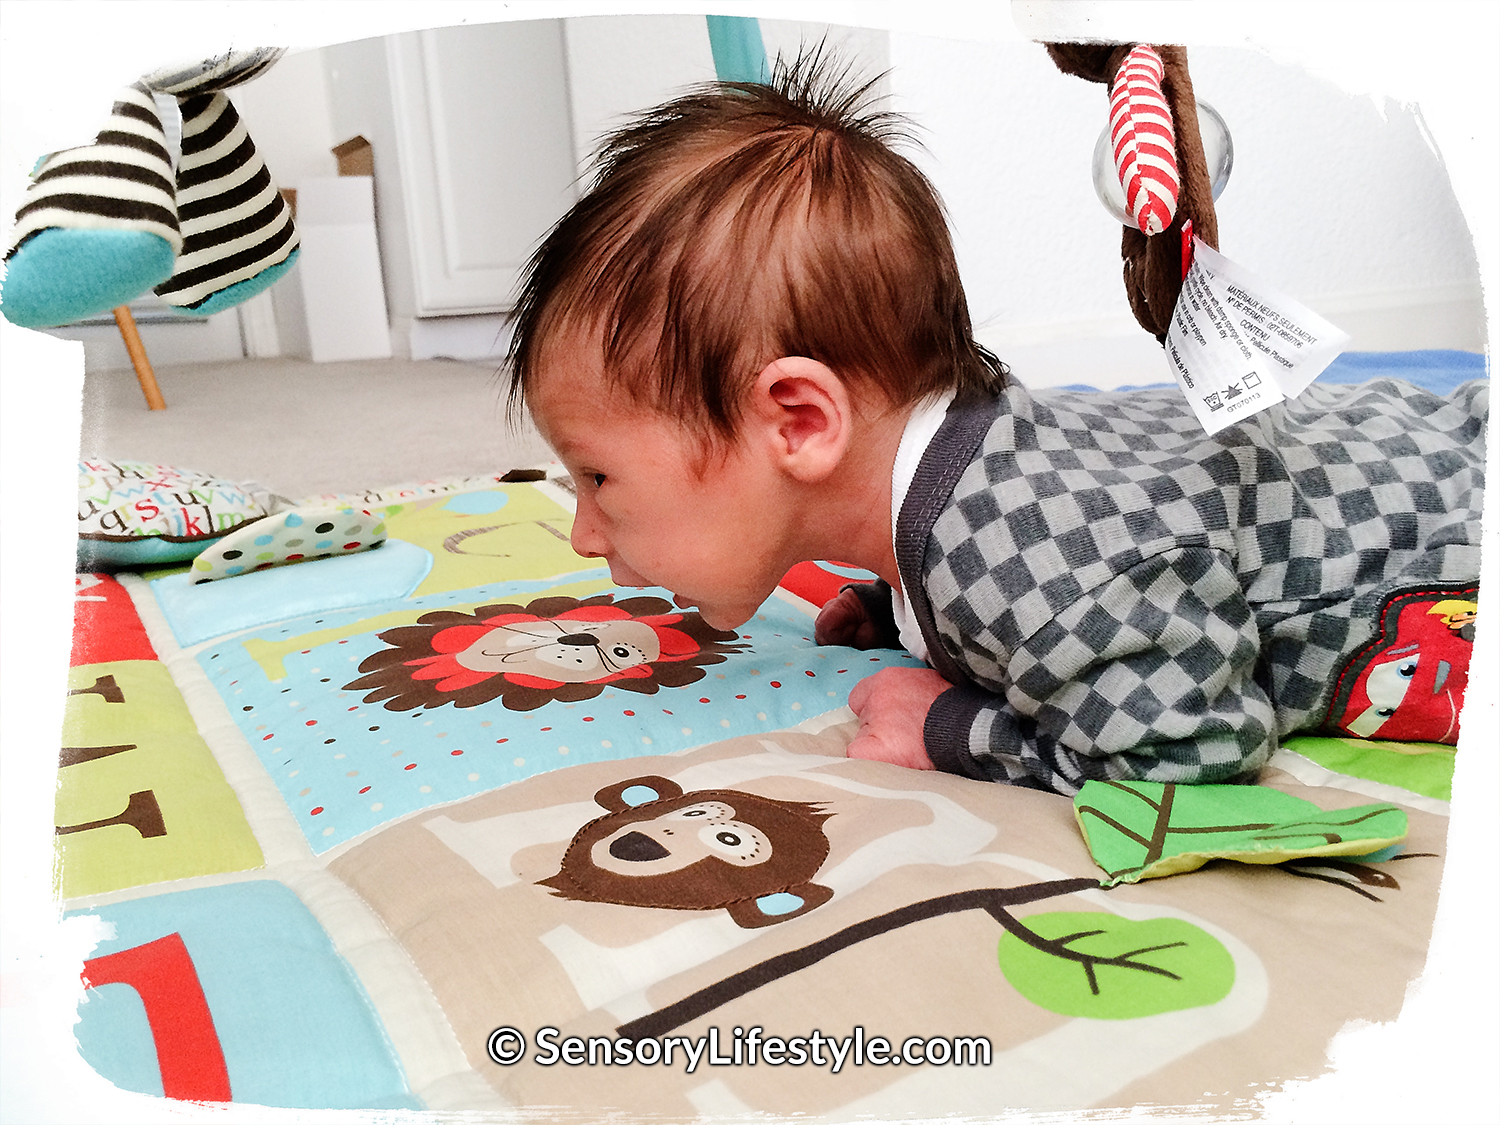 Sensory lifestyle - Tummy time